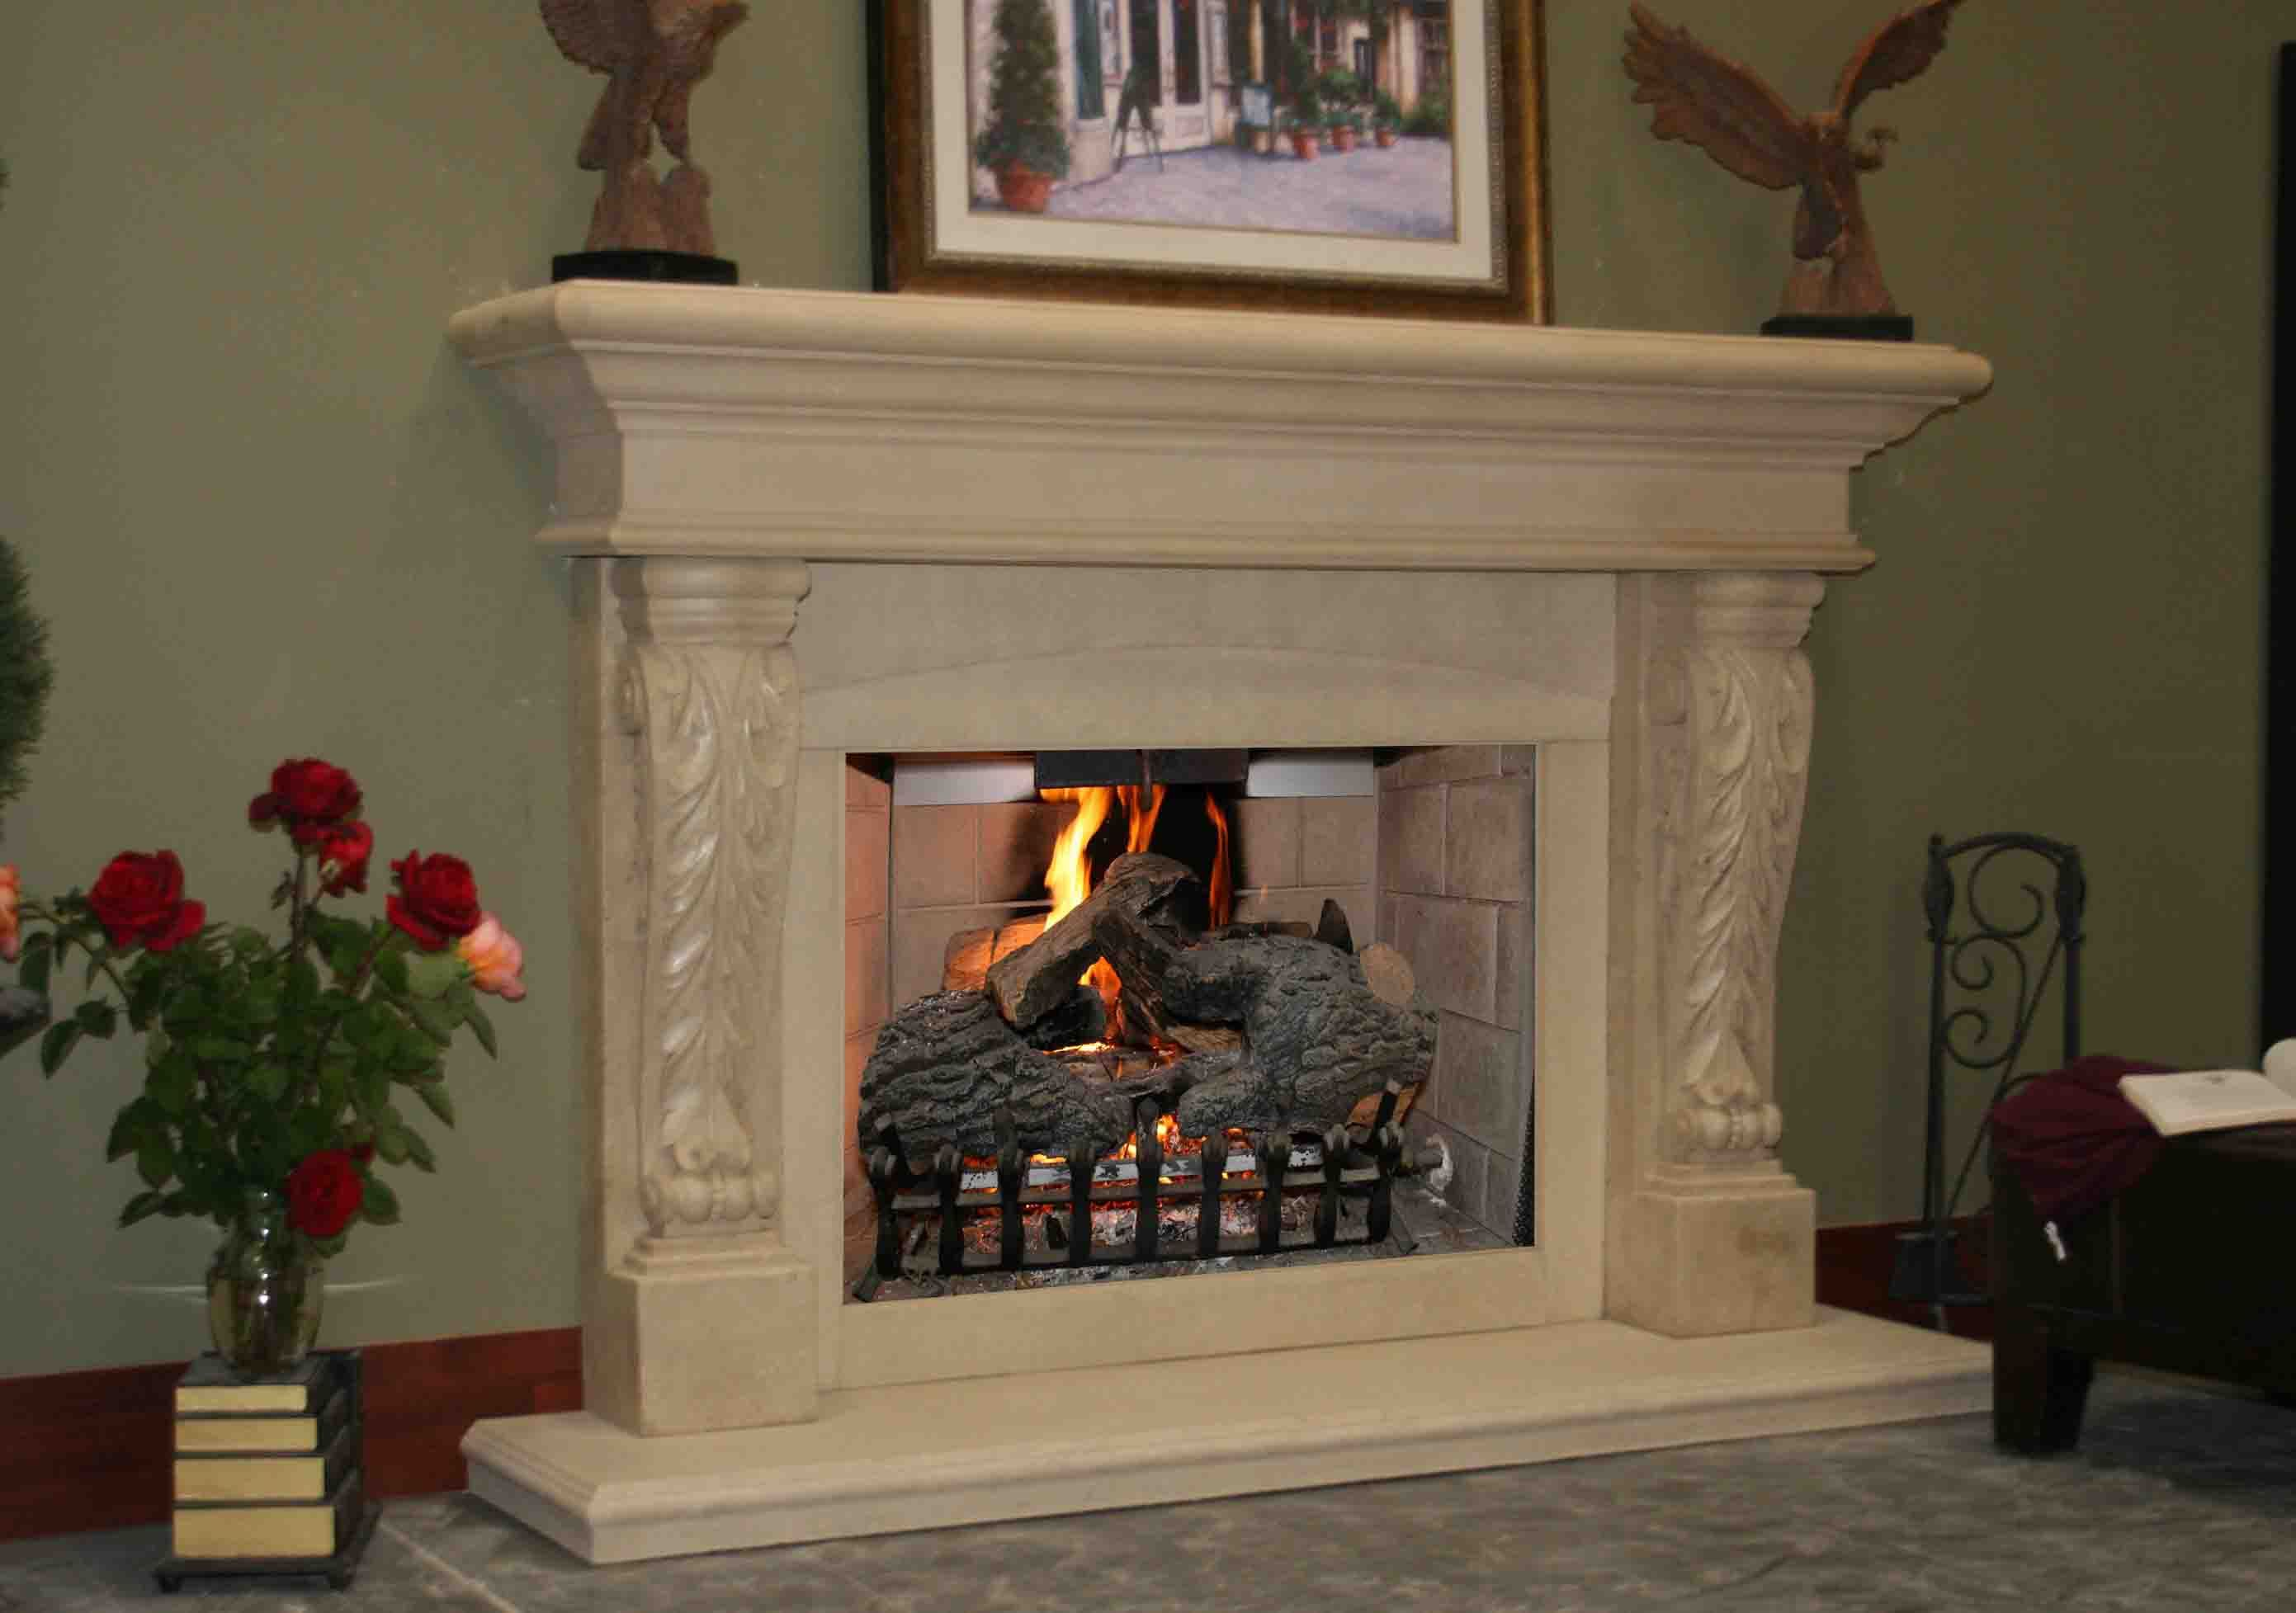 stone lighting mantel family wooden room mantels with recessed design all ideas images floor cool decor fireplace kits for and interior mantles your